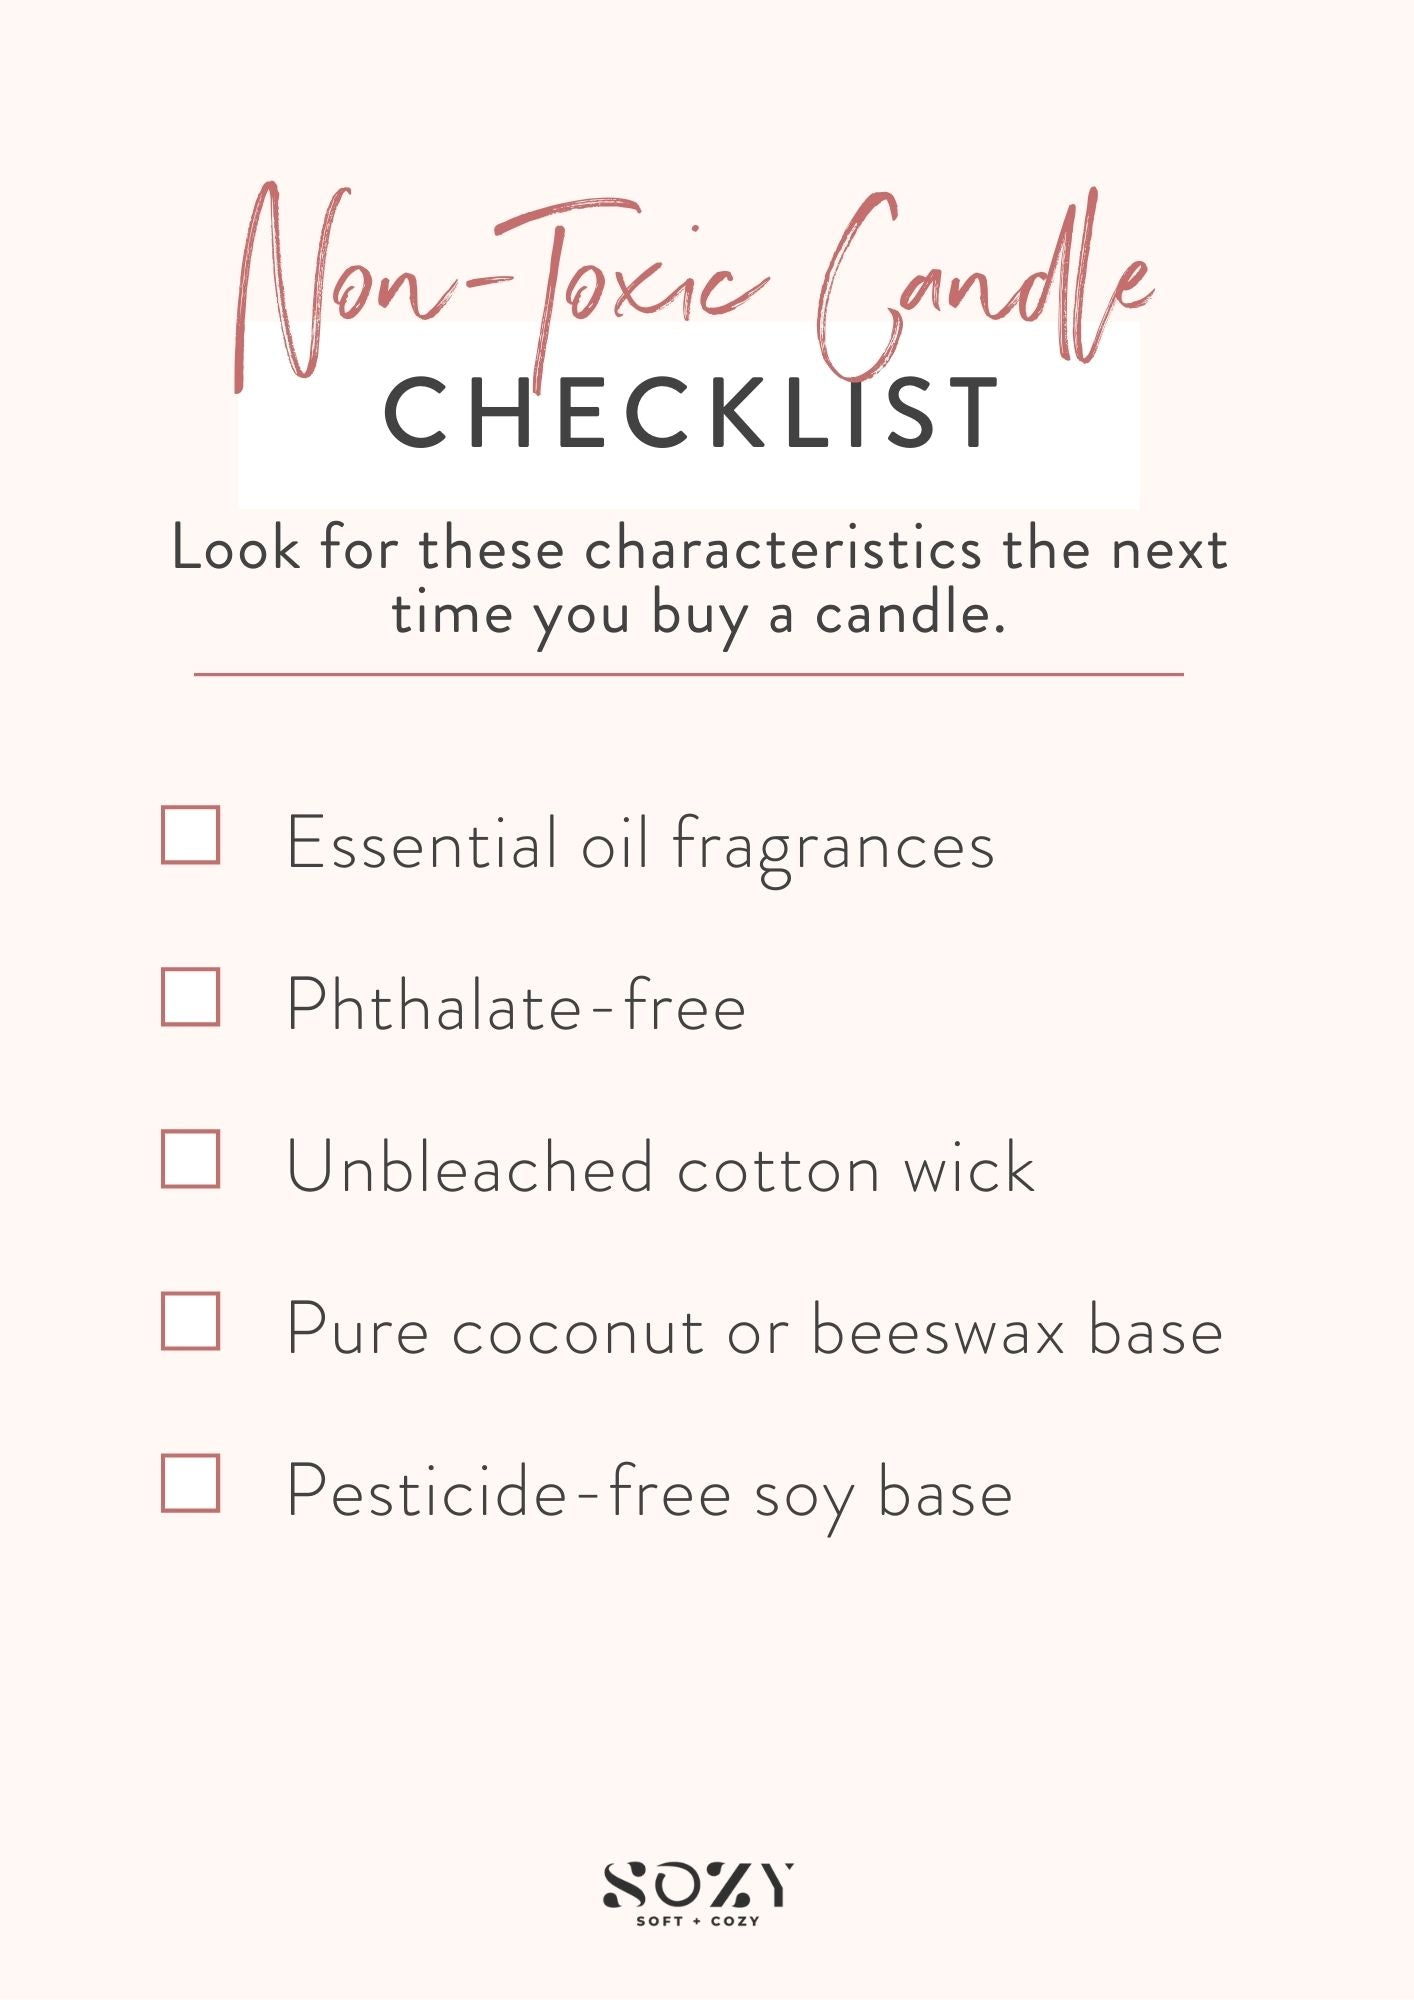 buyer's guide for non toxic candles